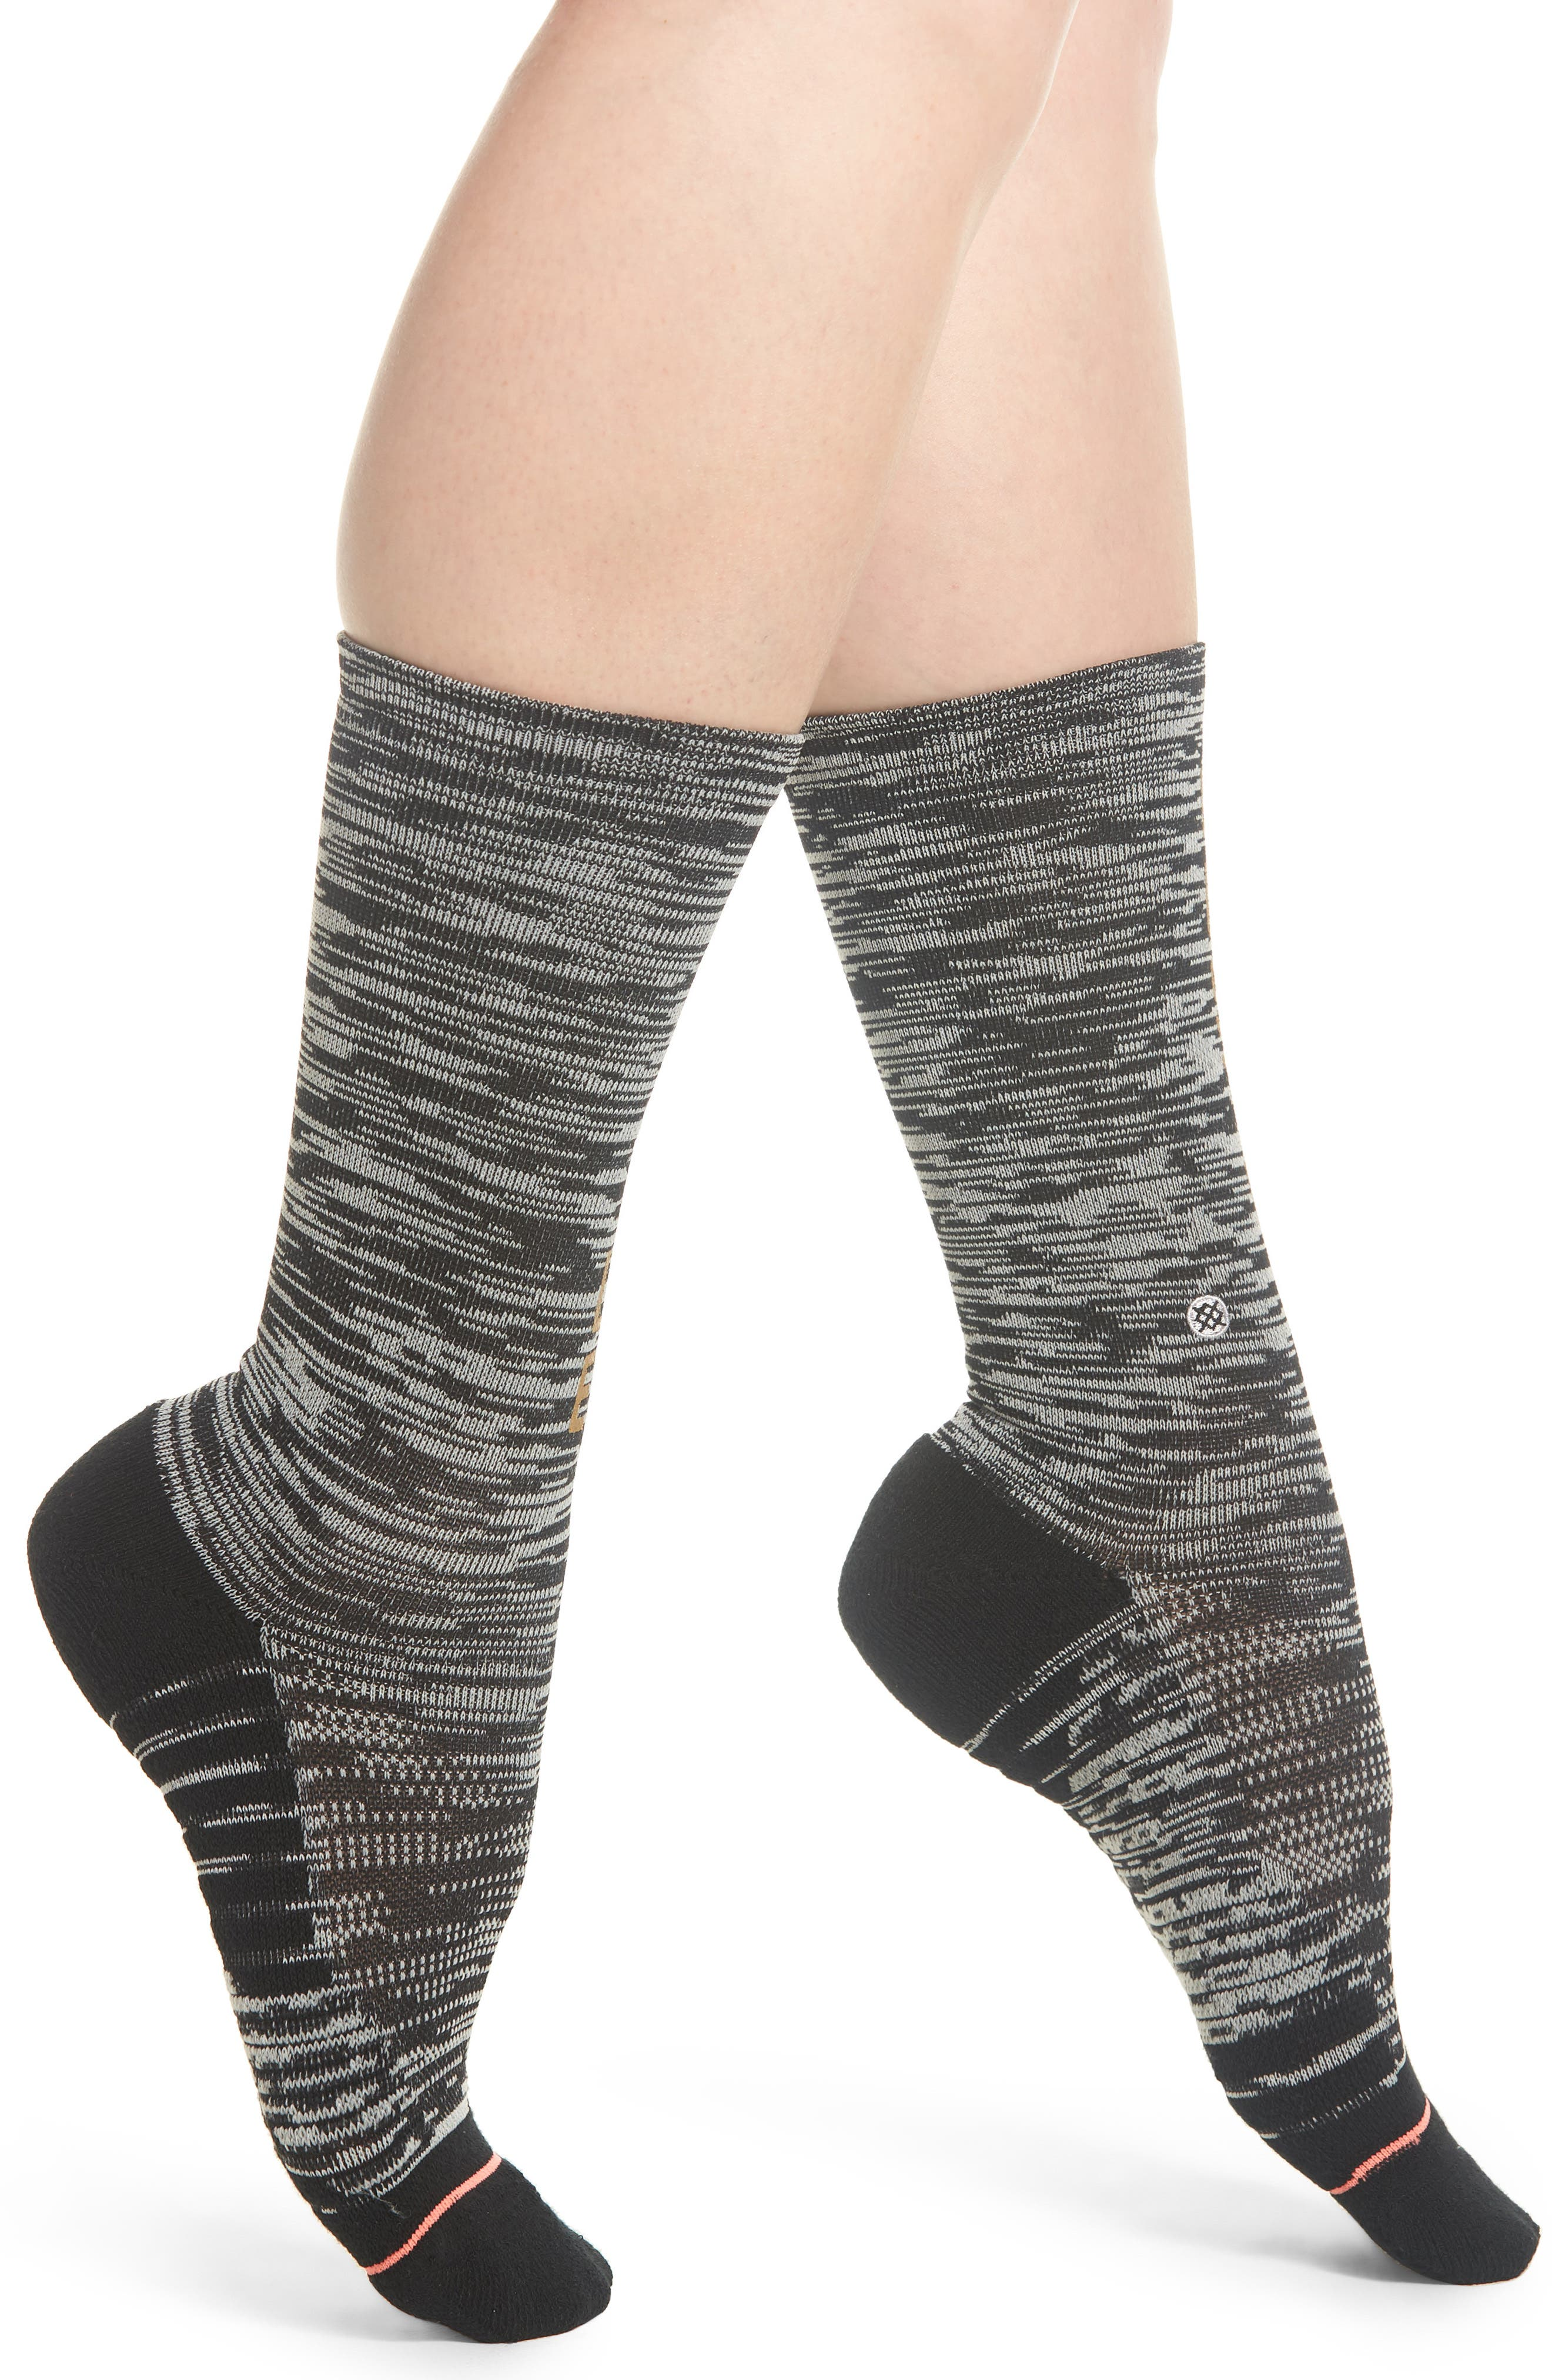 Hustle Harder Crew Socks,                             Main thumbnail 1, color,                             Black